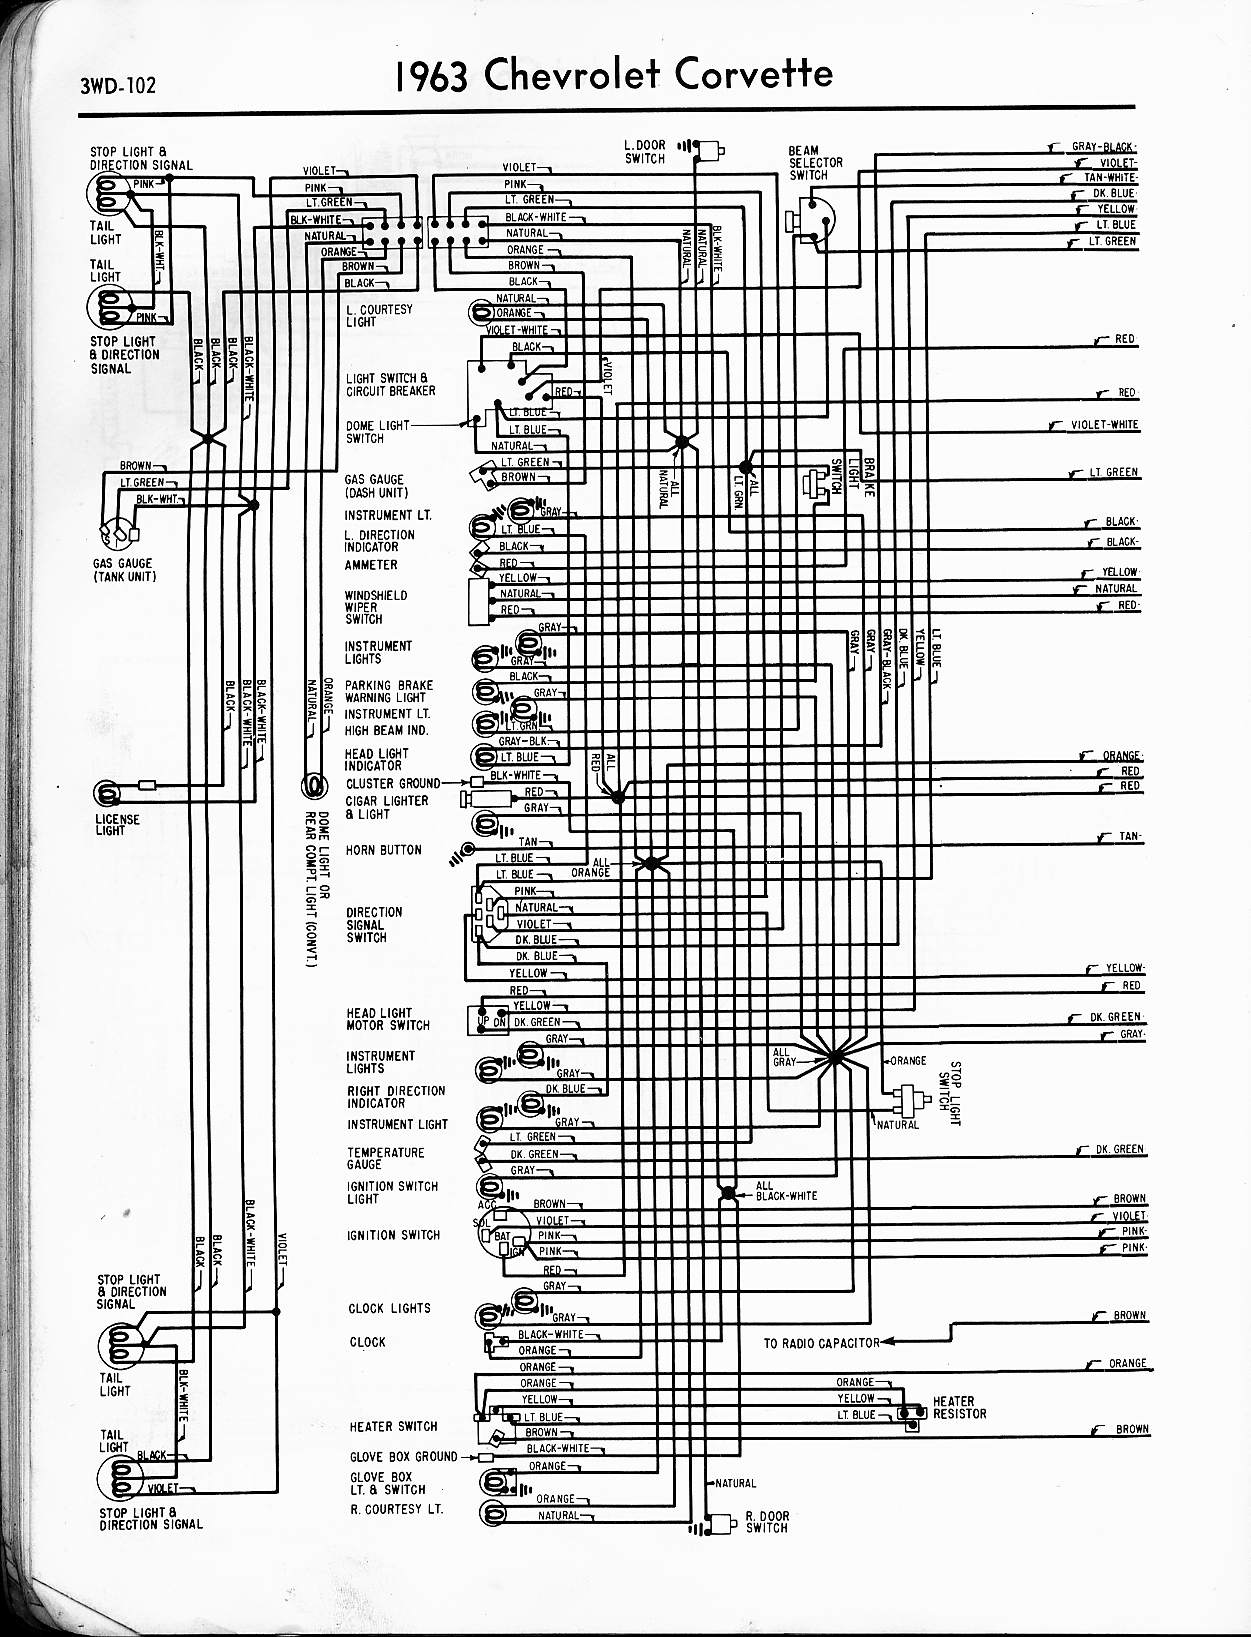 Corvette Wiring Schematic Archive Of Automotive Diagram 1976 Gmc 1965 Dash Just Data Rh Ag Skiphire Co Uk 1984